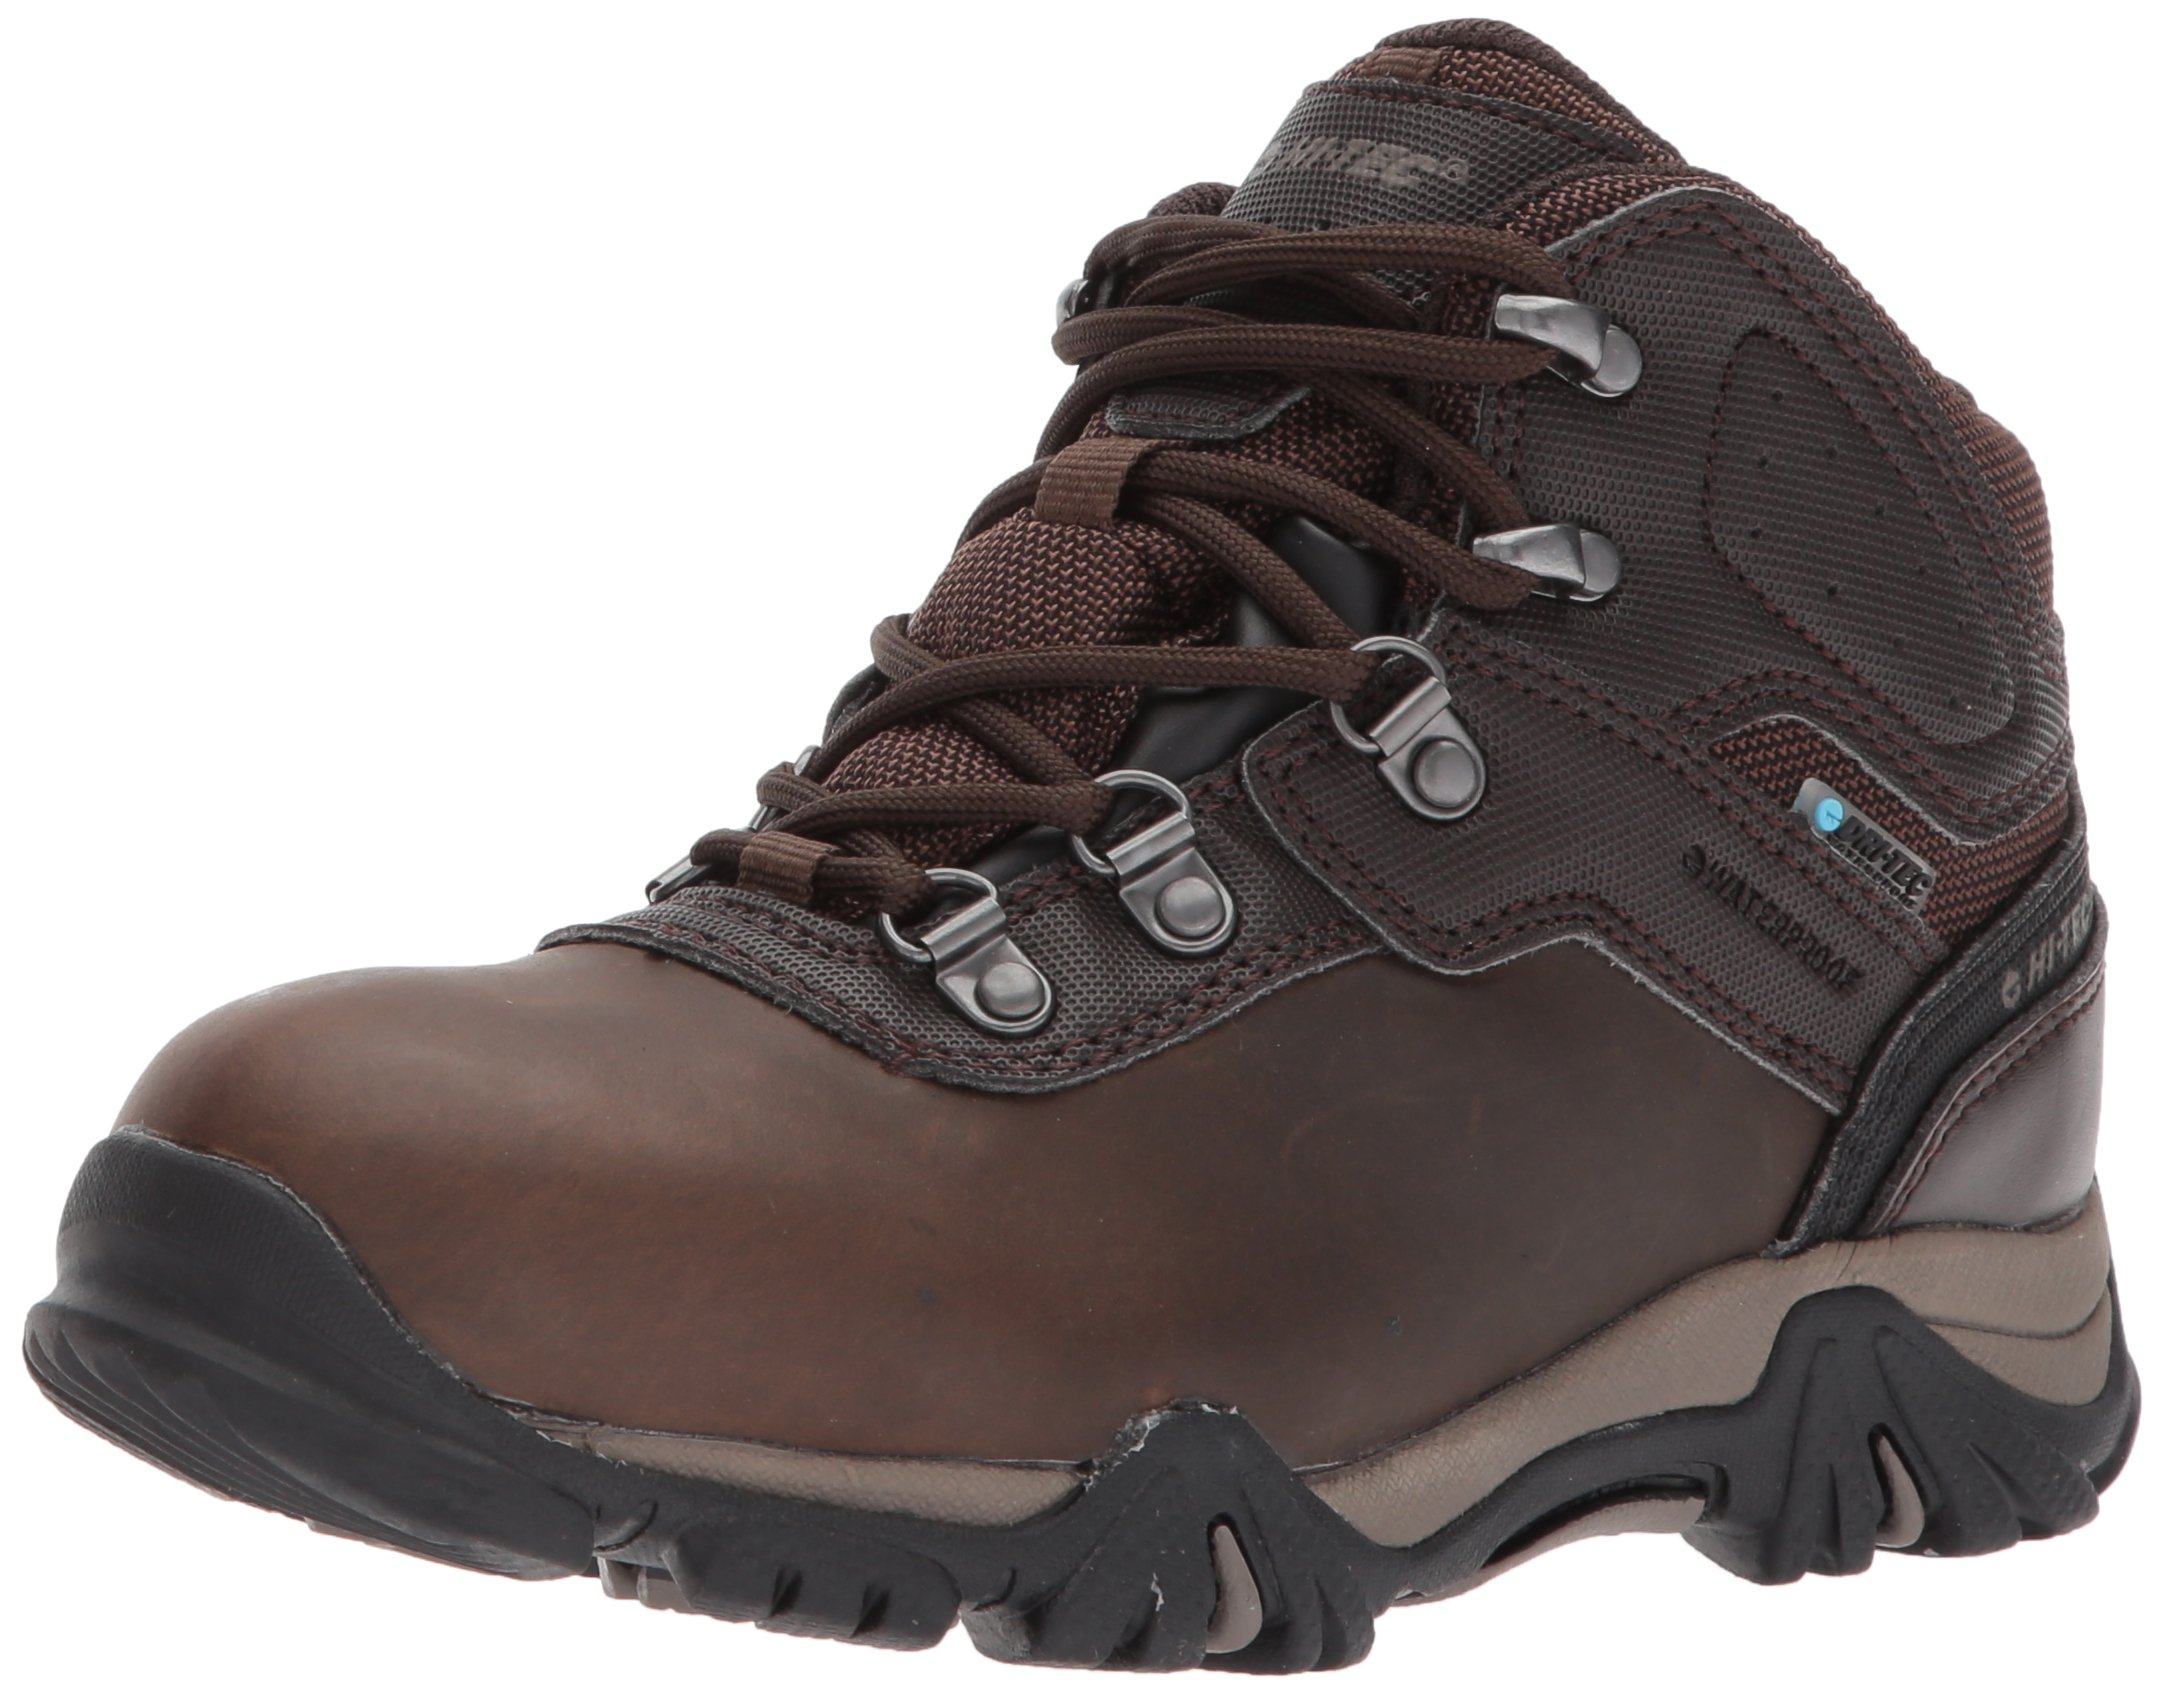 Hi-Tec Unisex Altitude VI Jr Waterproof Hiking Boot, Dark Chocolate, 2 Medium US Little Kid